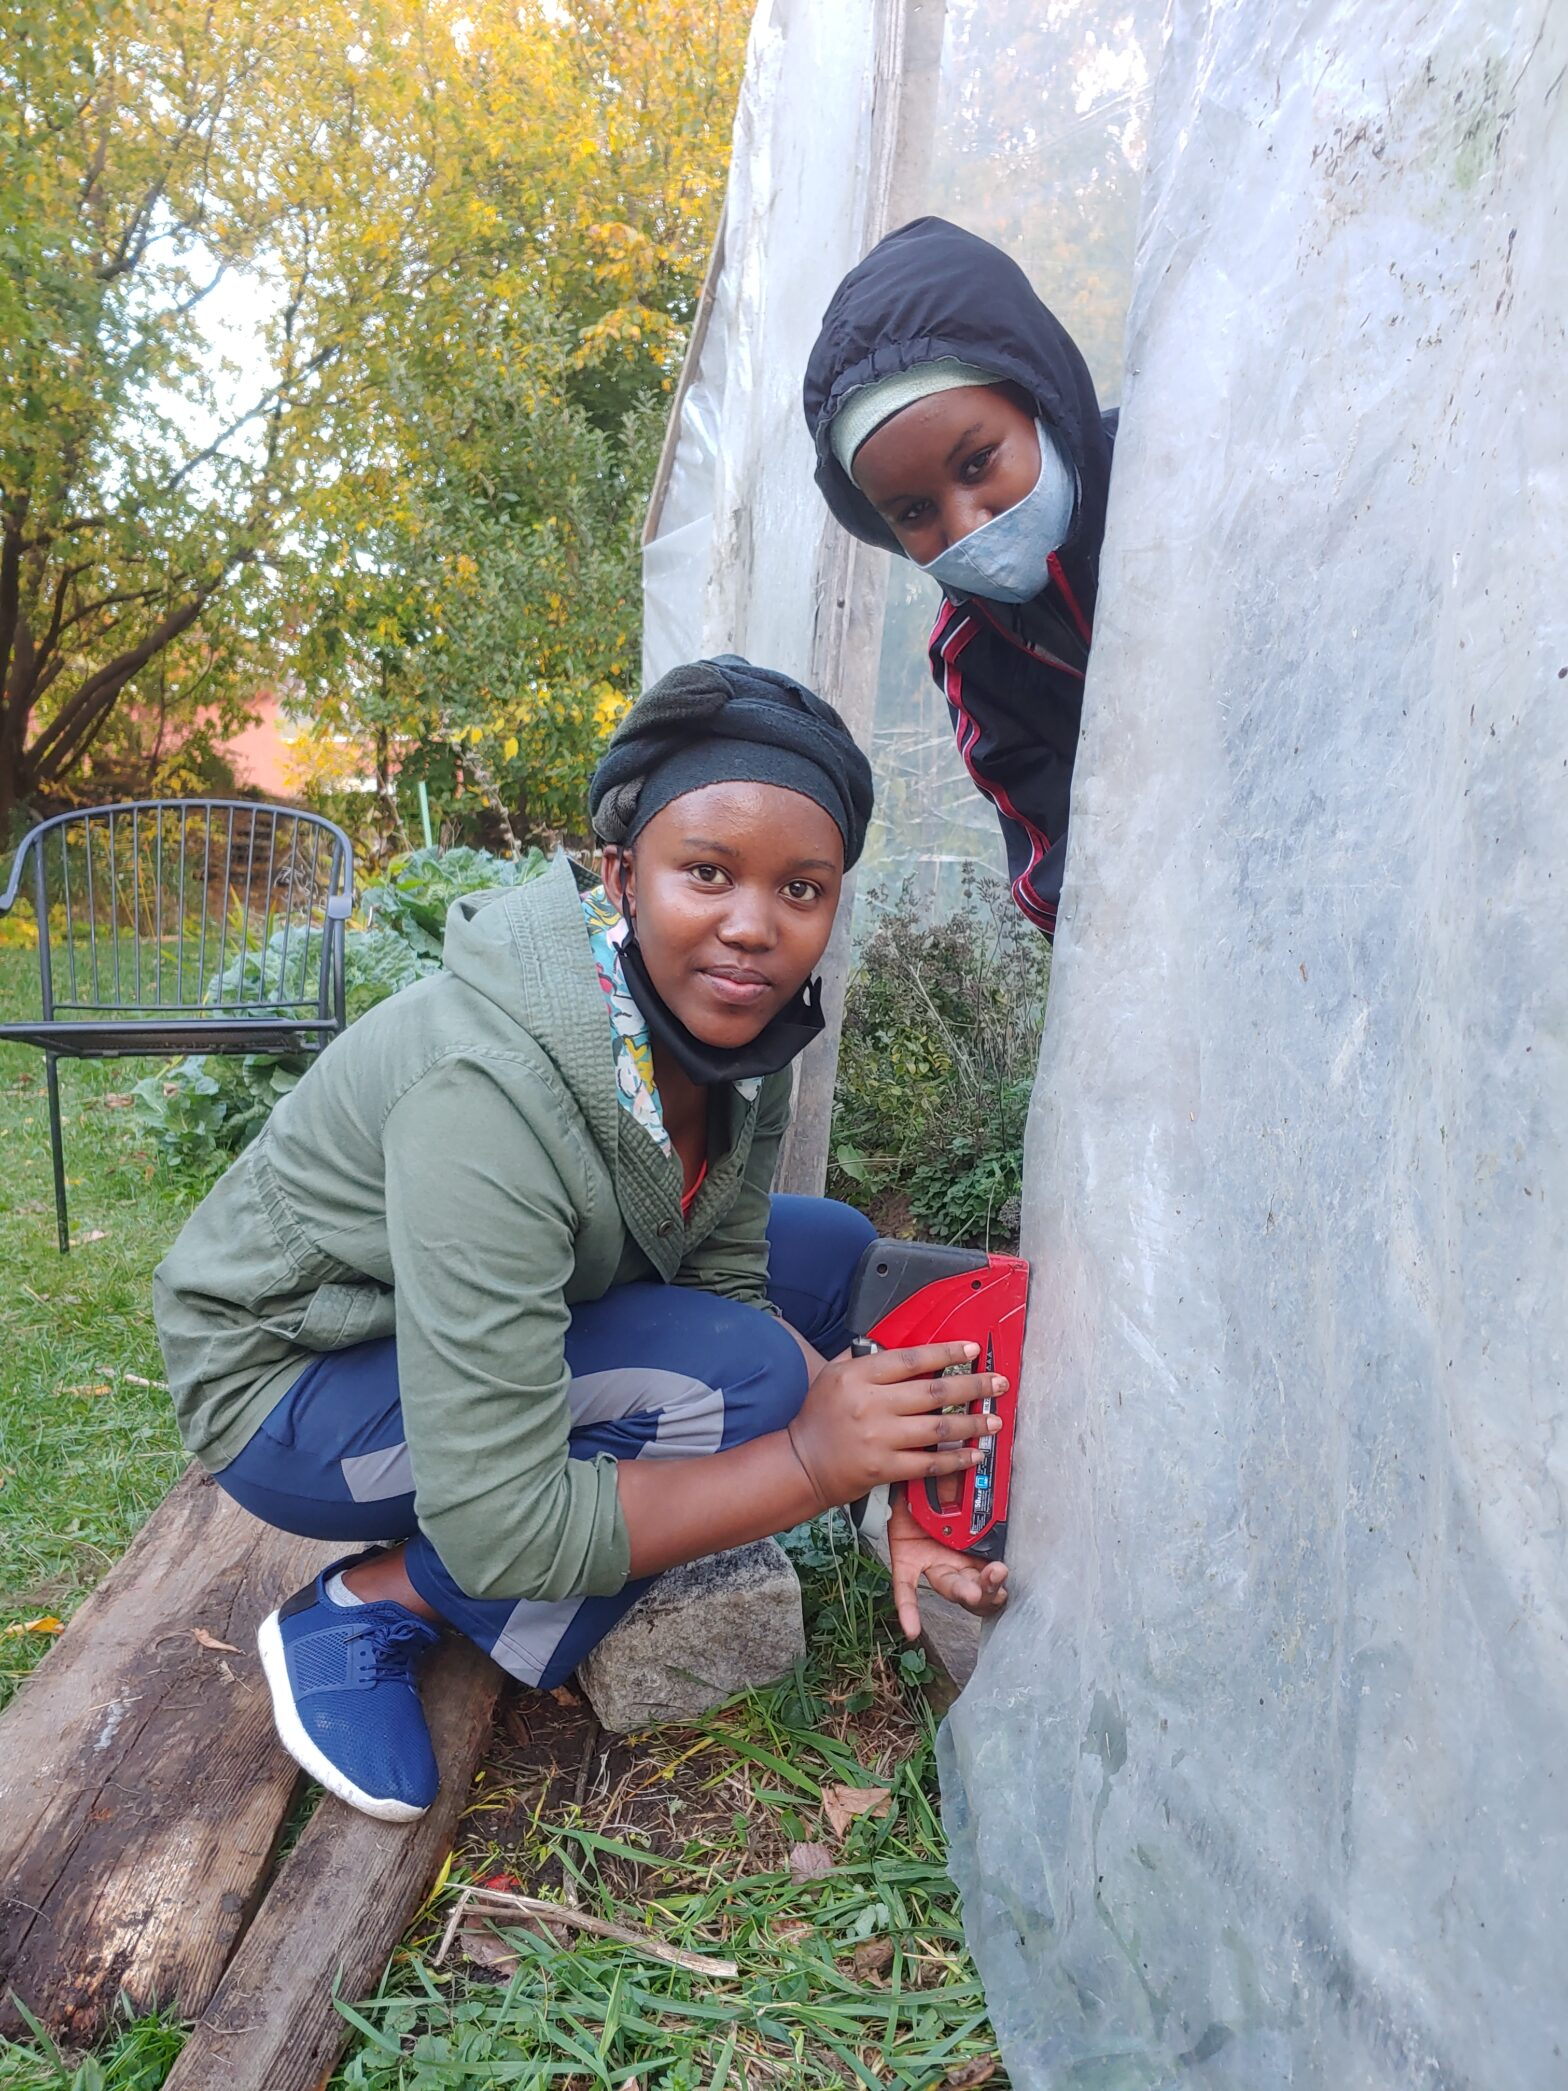 Sisters Making a Difference Together